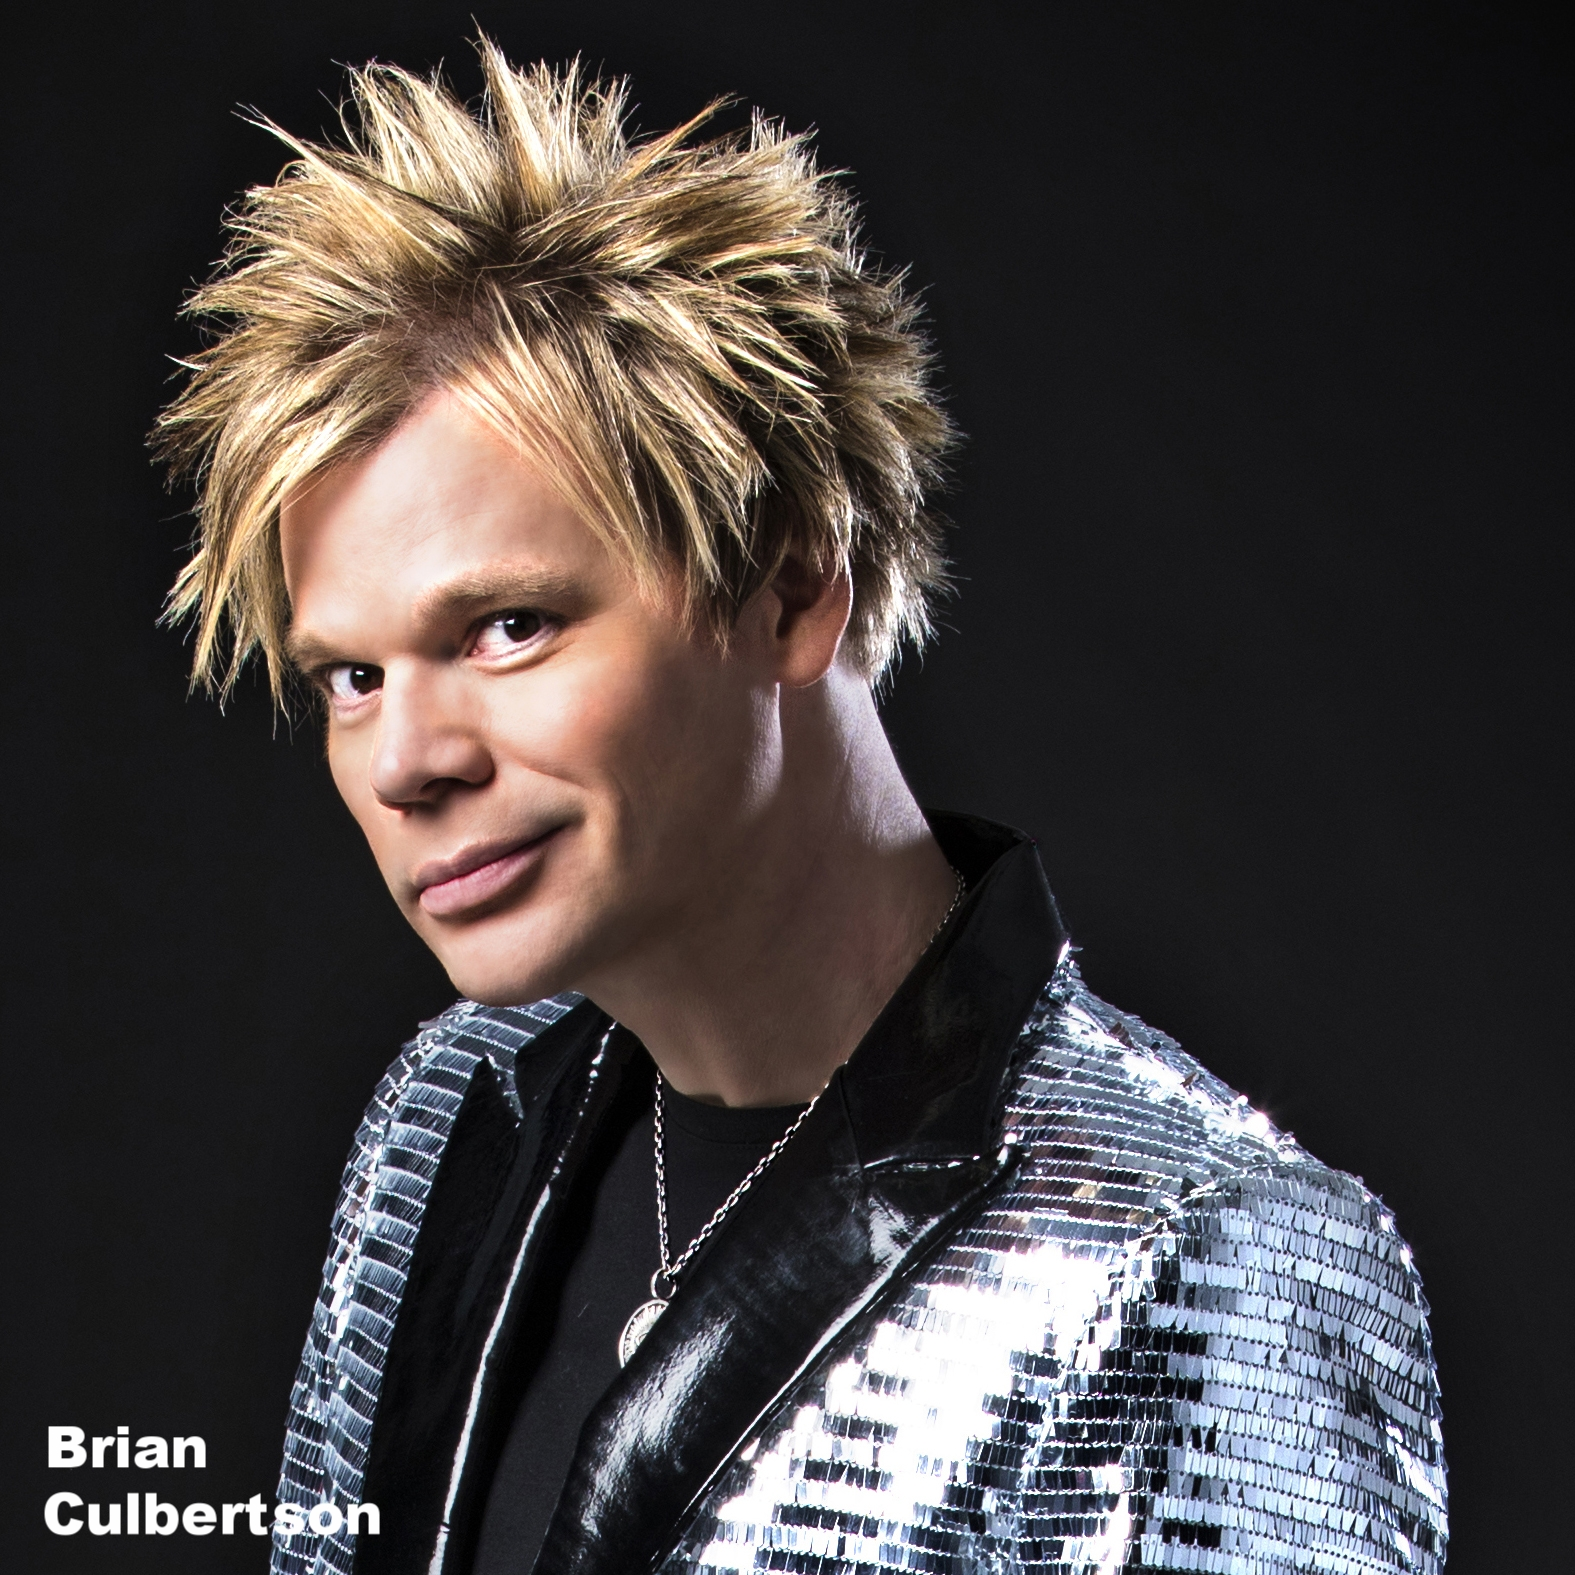 Brian Culbertson Press PhotoSQ3 edit.jpg